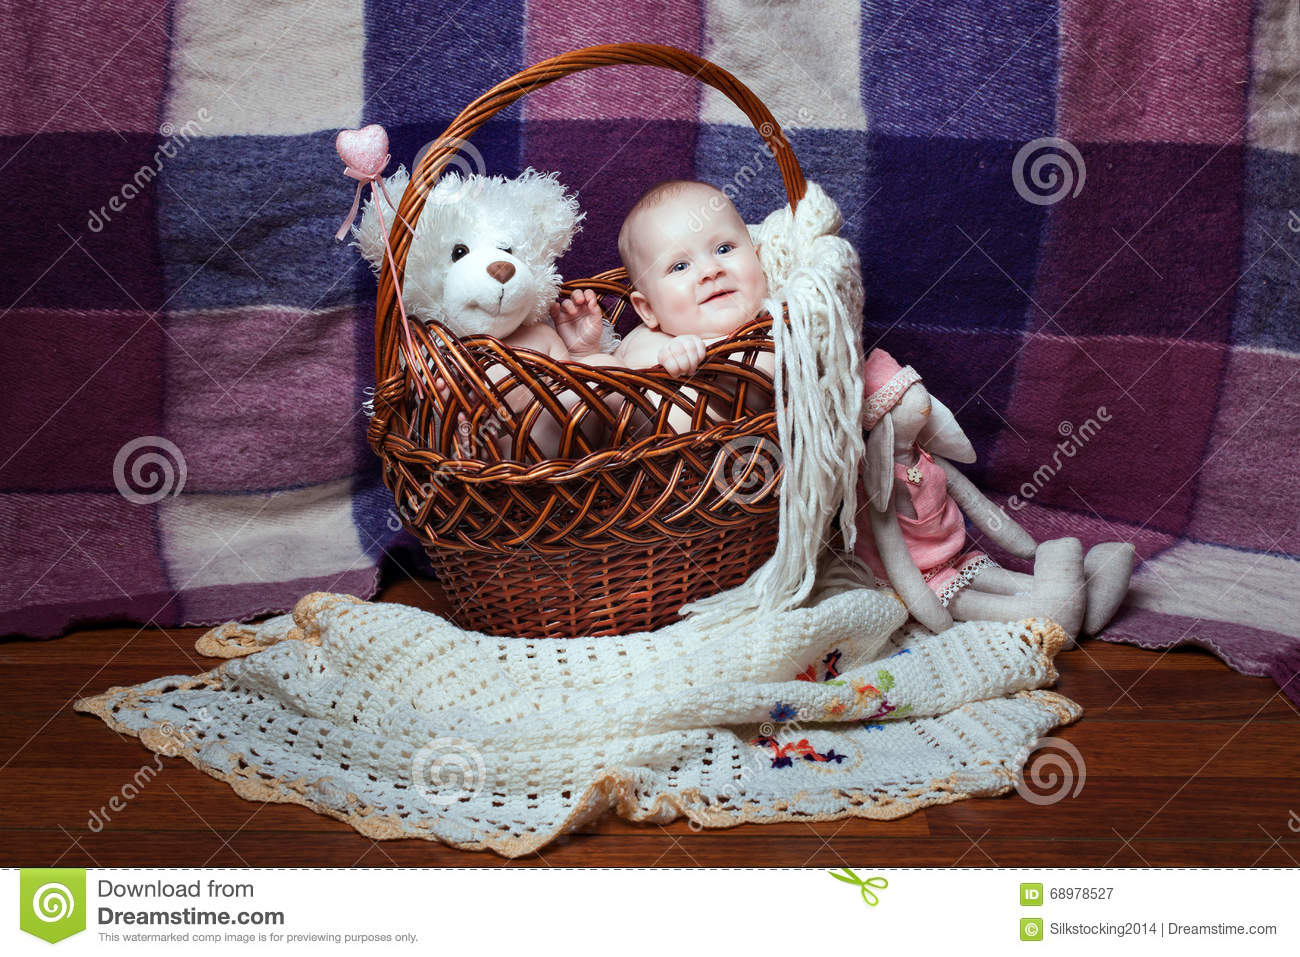 Smiling baby in a basket